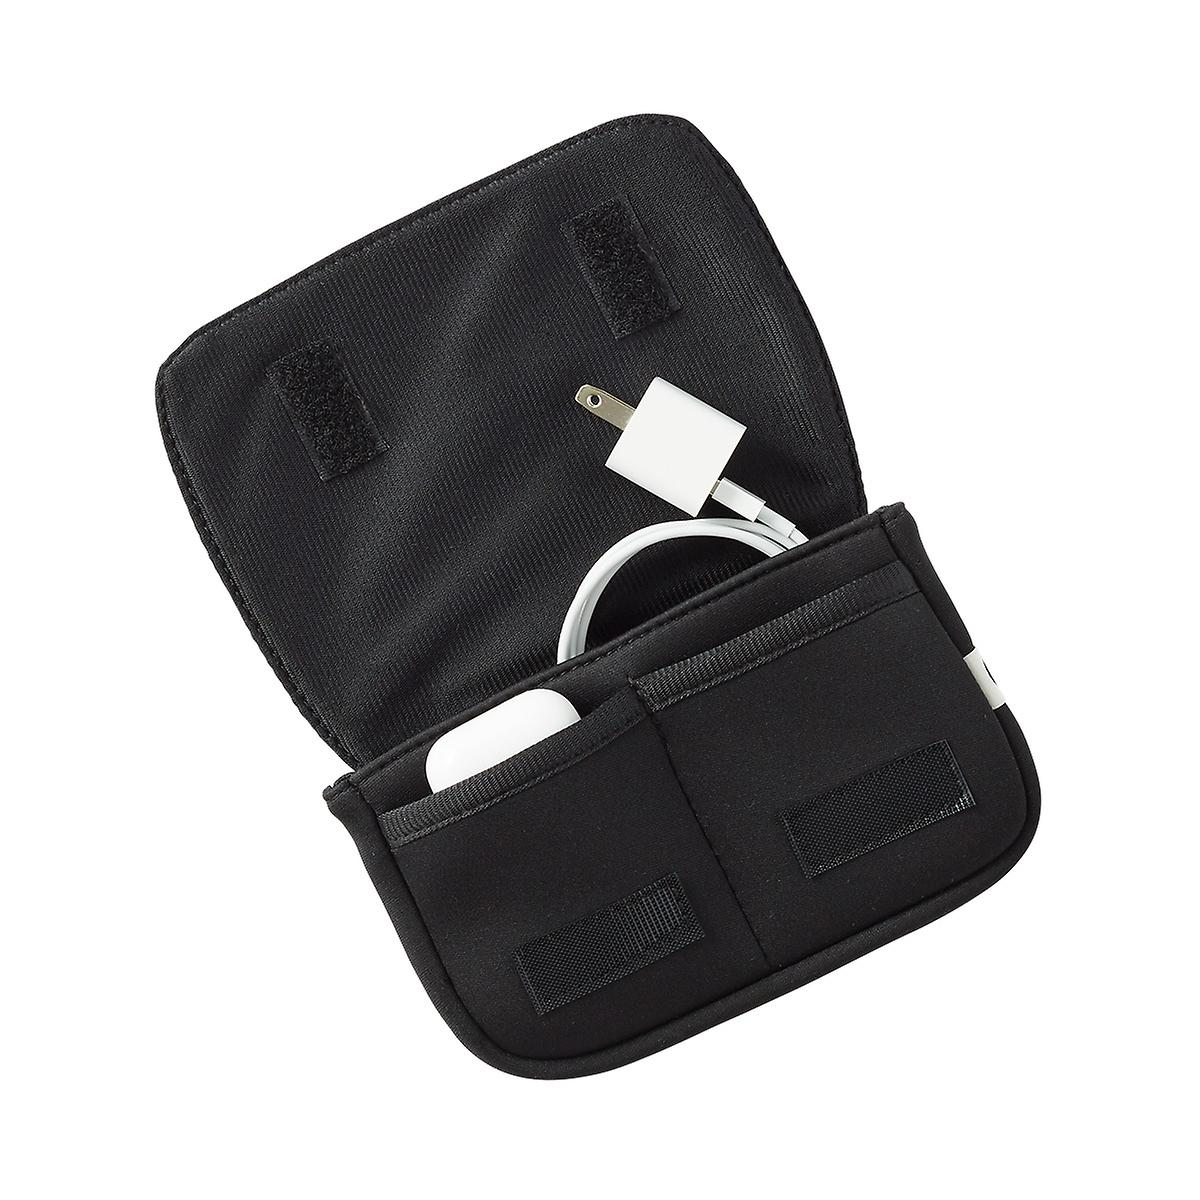 Charger & Cord Tech Case